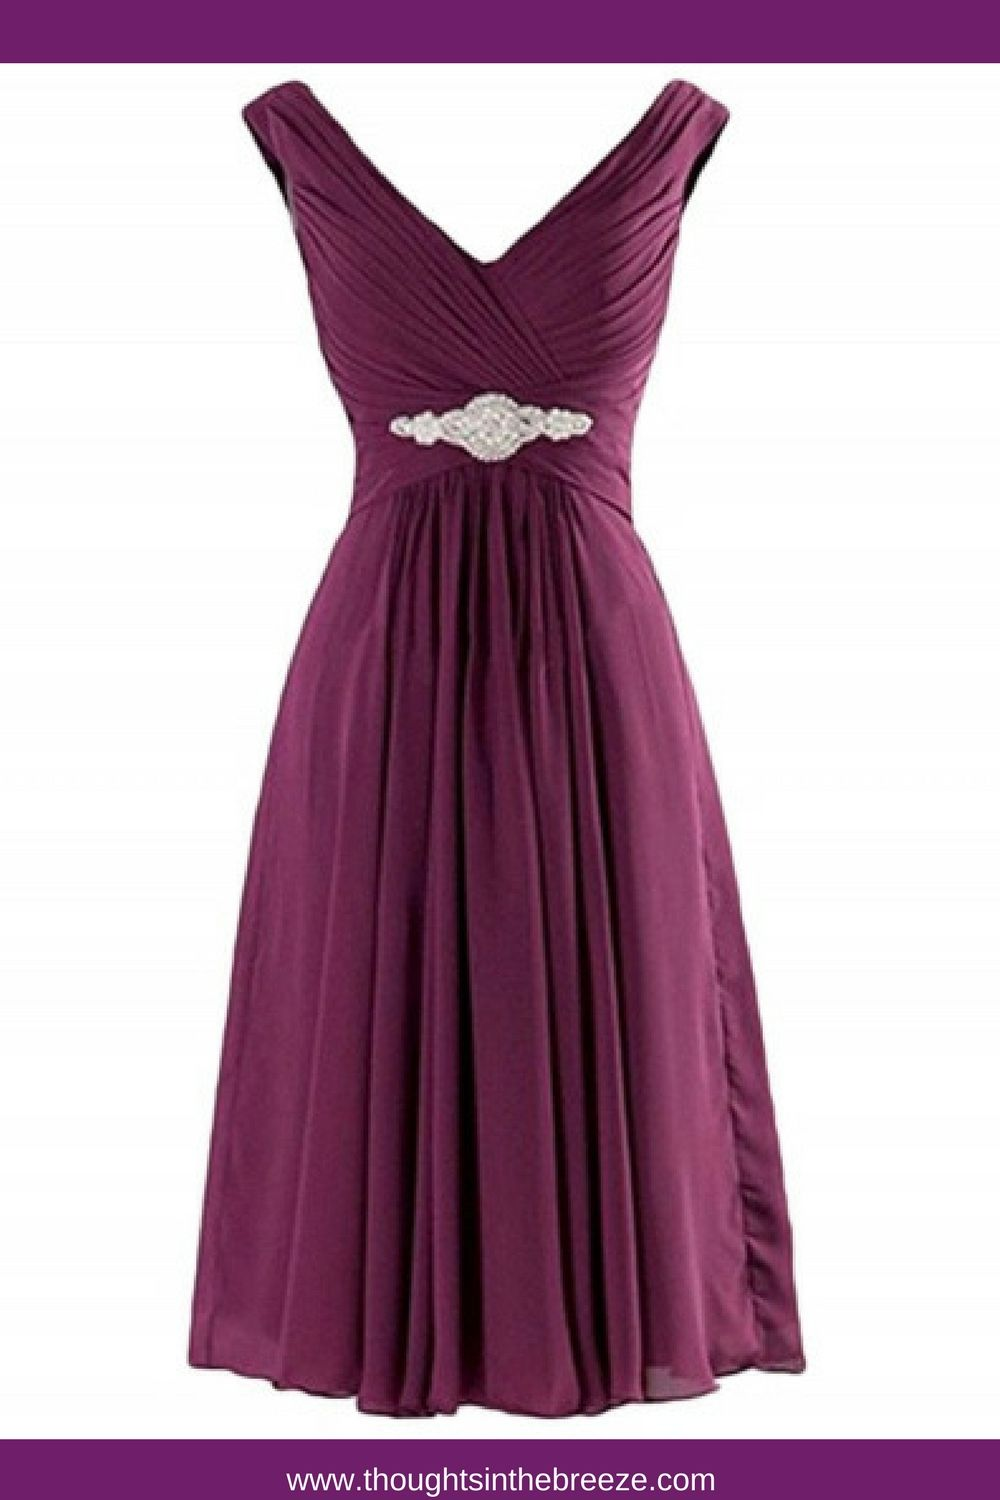 Womenus v neck sleeveless pleated cocktail dress looking for an